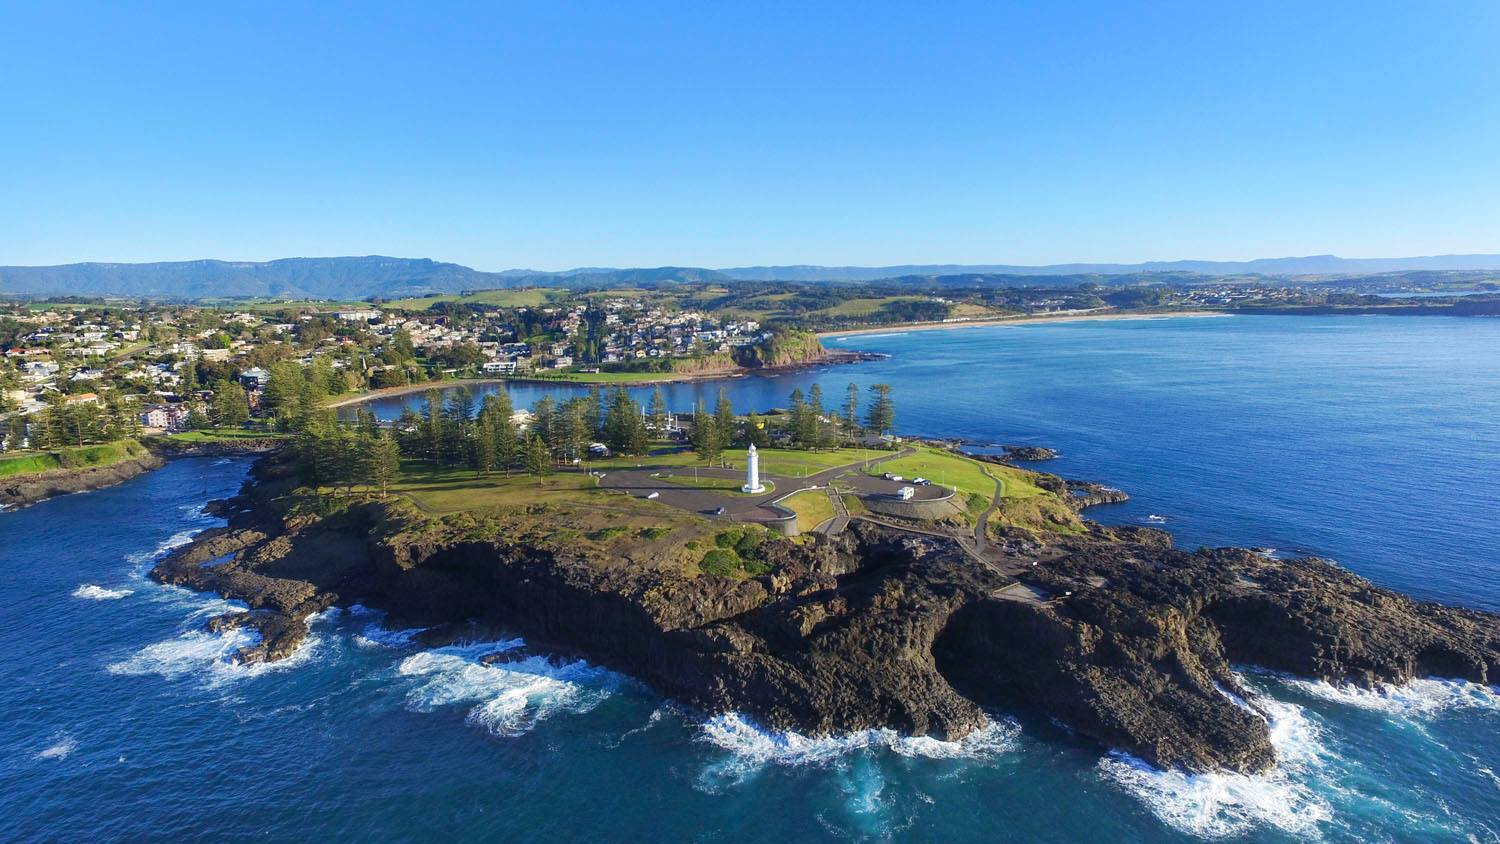 destination-kiama-kiama-kiama-blowhole-south-coast1.jpg